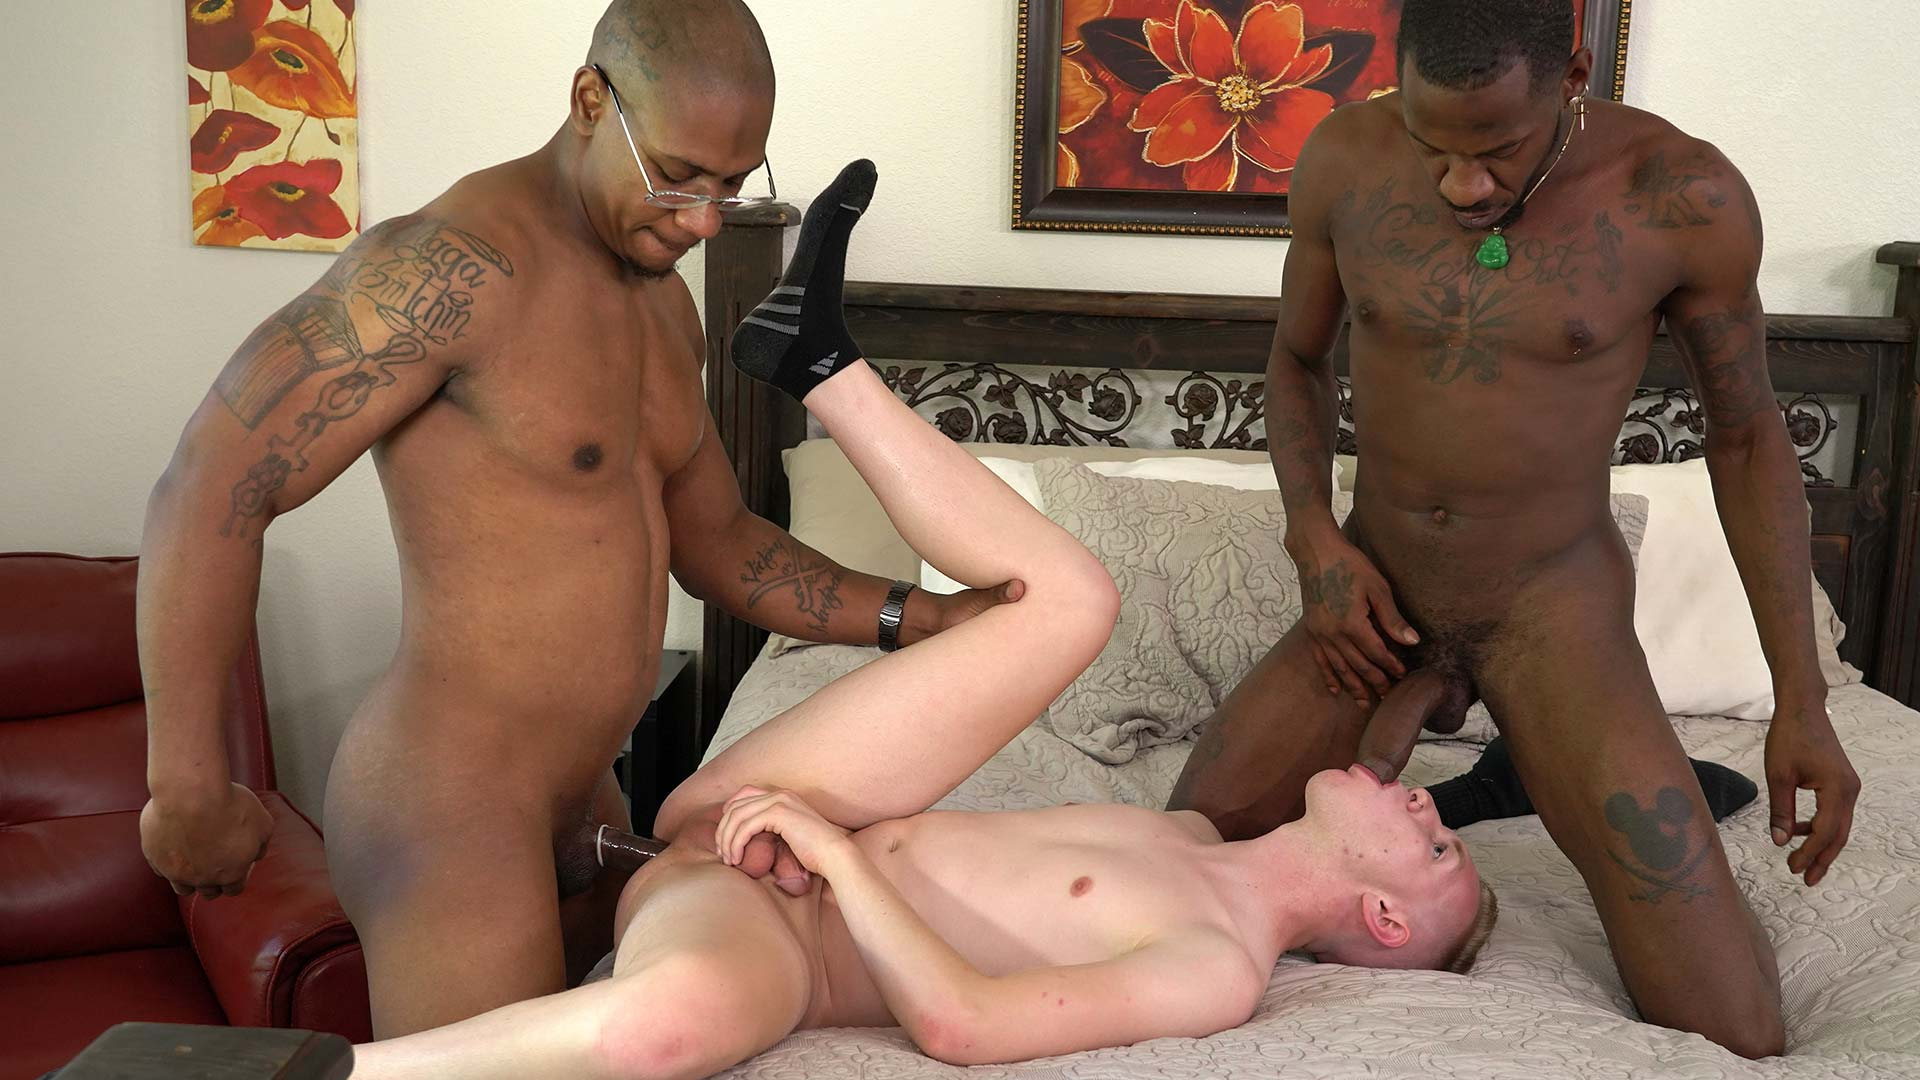 Tyler Price, Deepdicc, Lawrence West & Micah Martinez